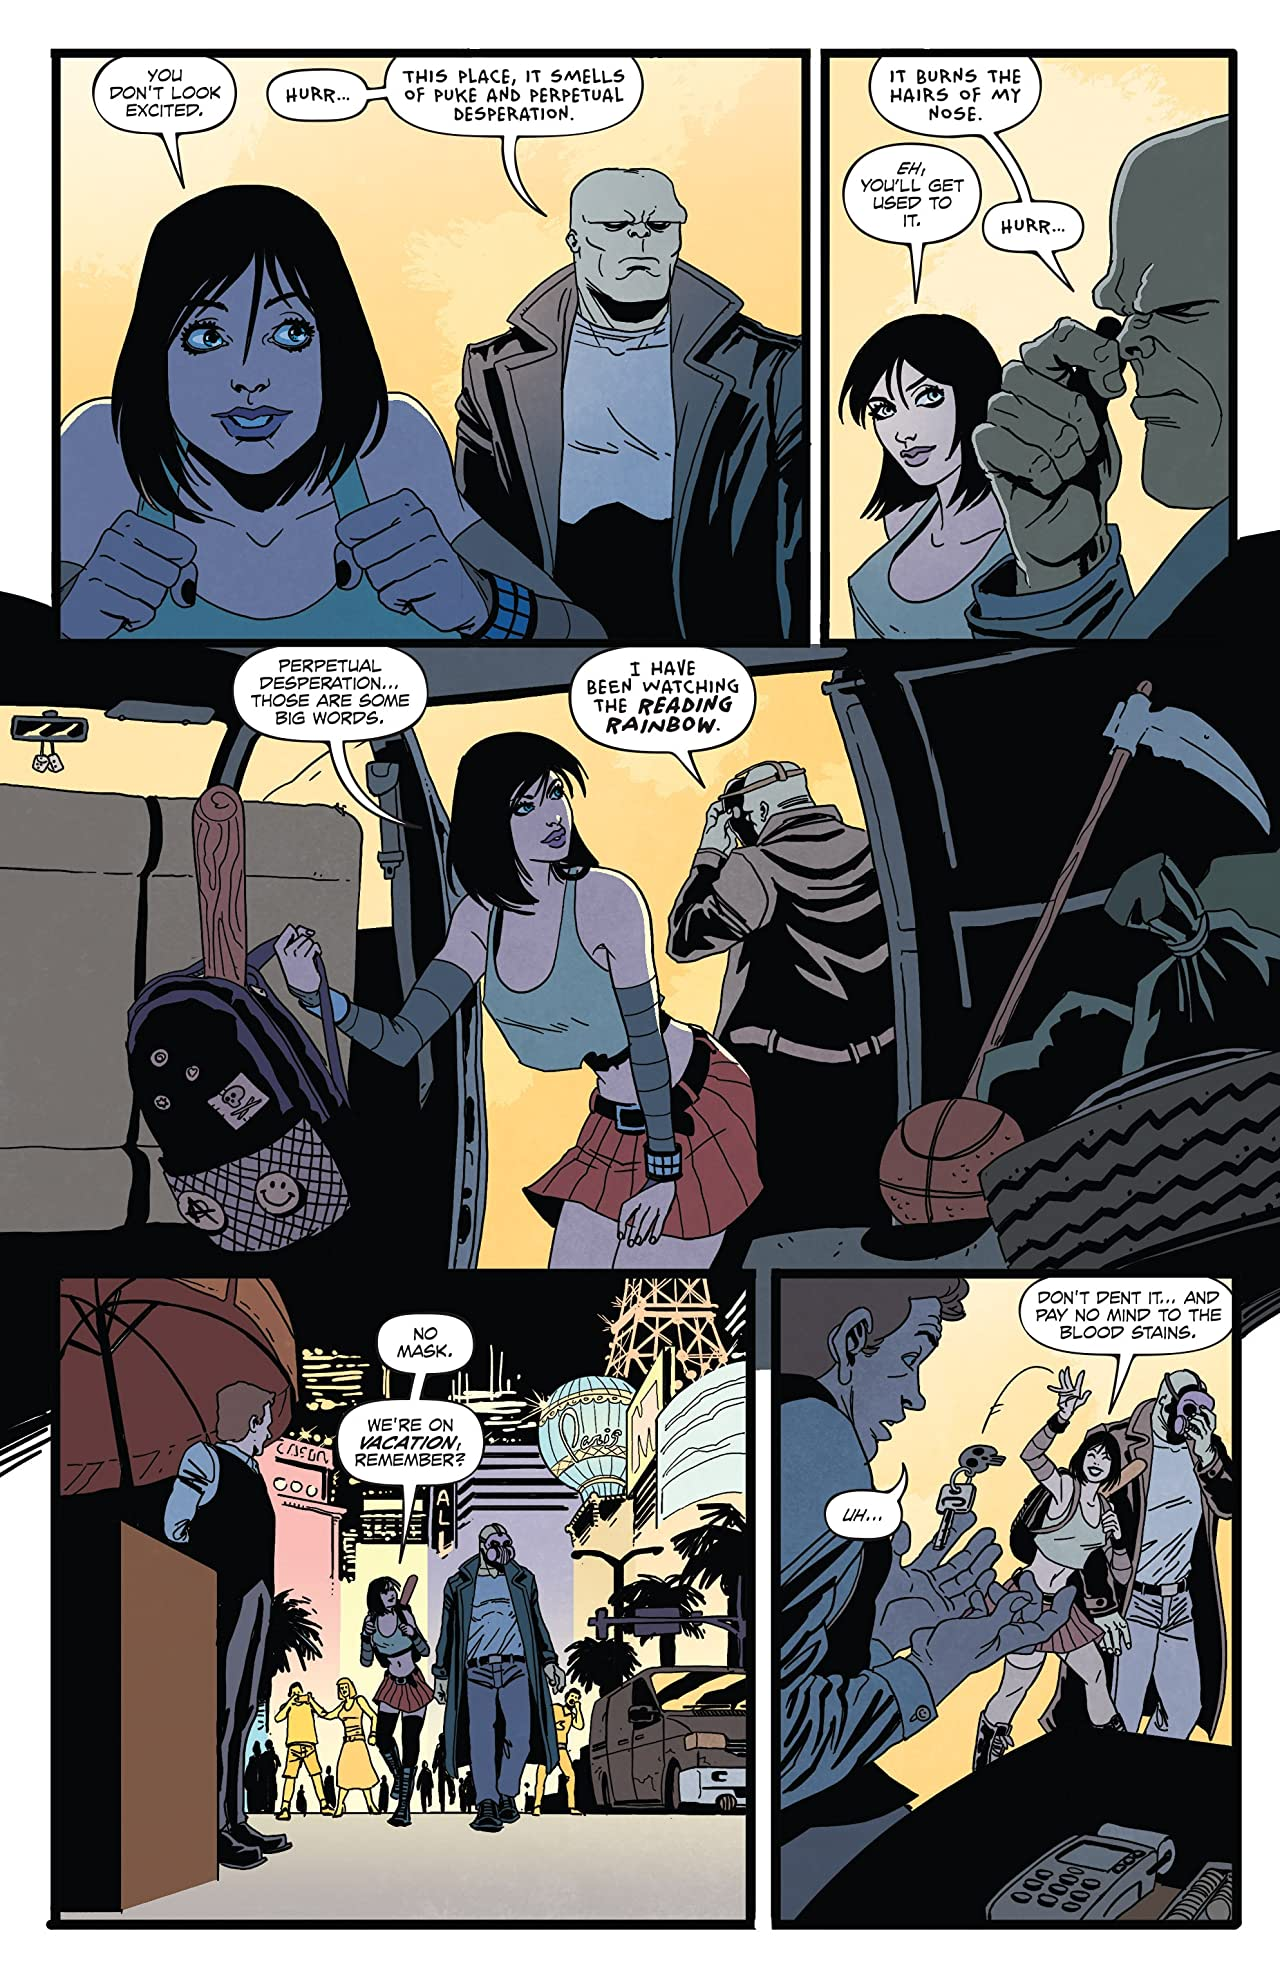 Hack/Slash vs. Vampirella #1